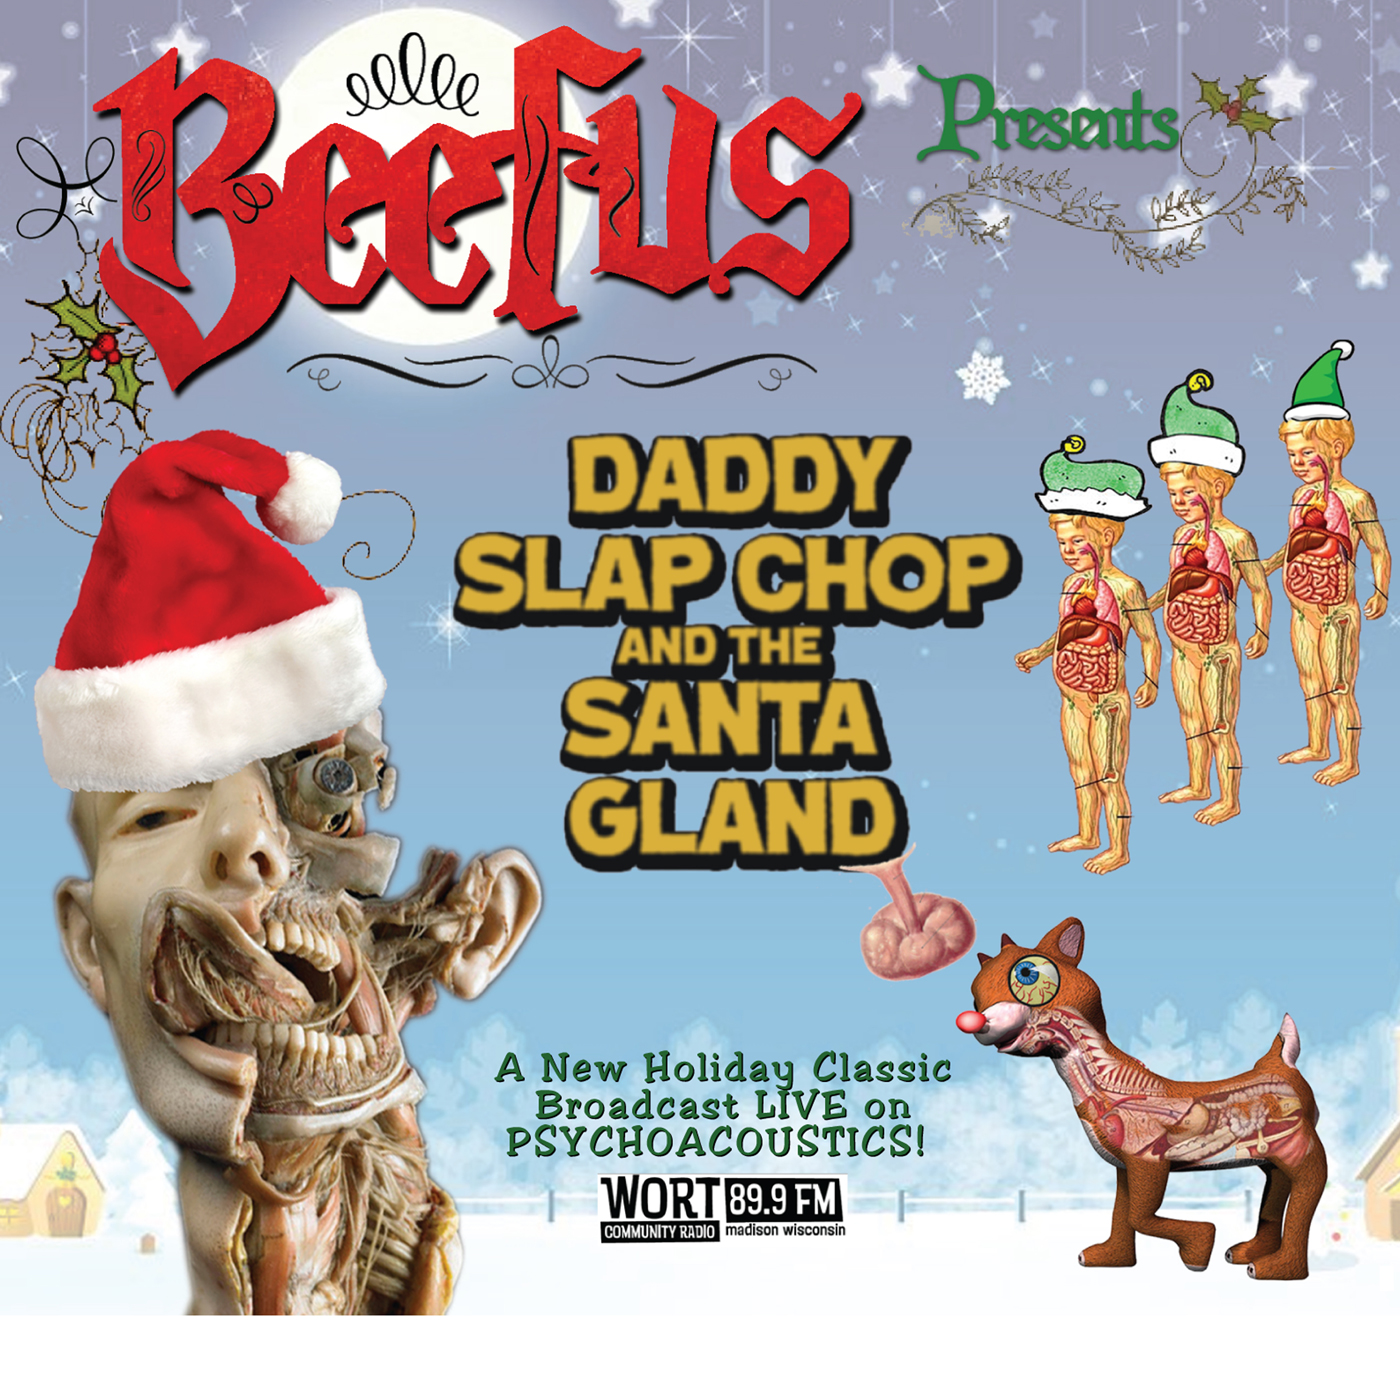 BEEFUS- 'Daddy Slap Chop and the Santa Gland'